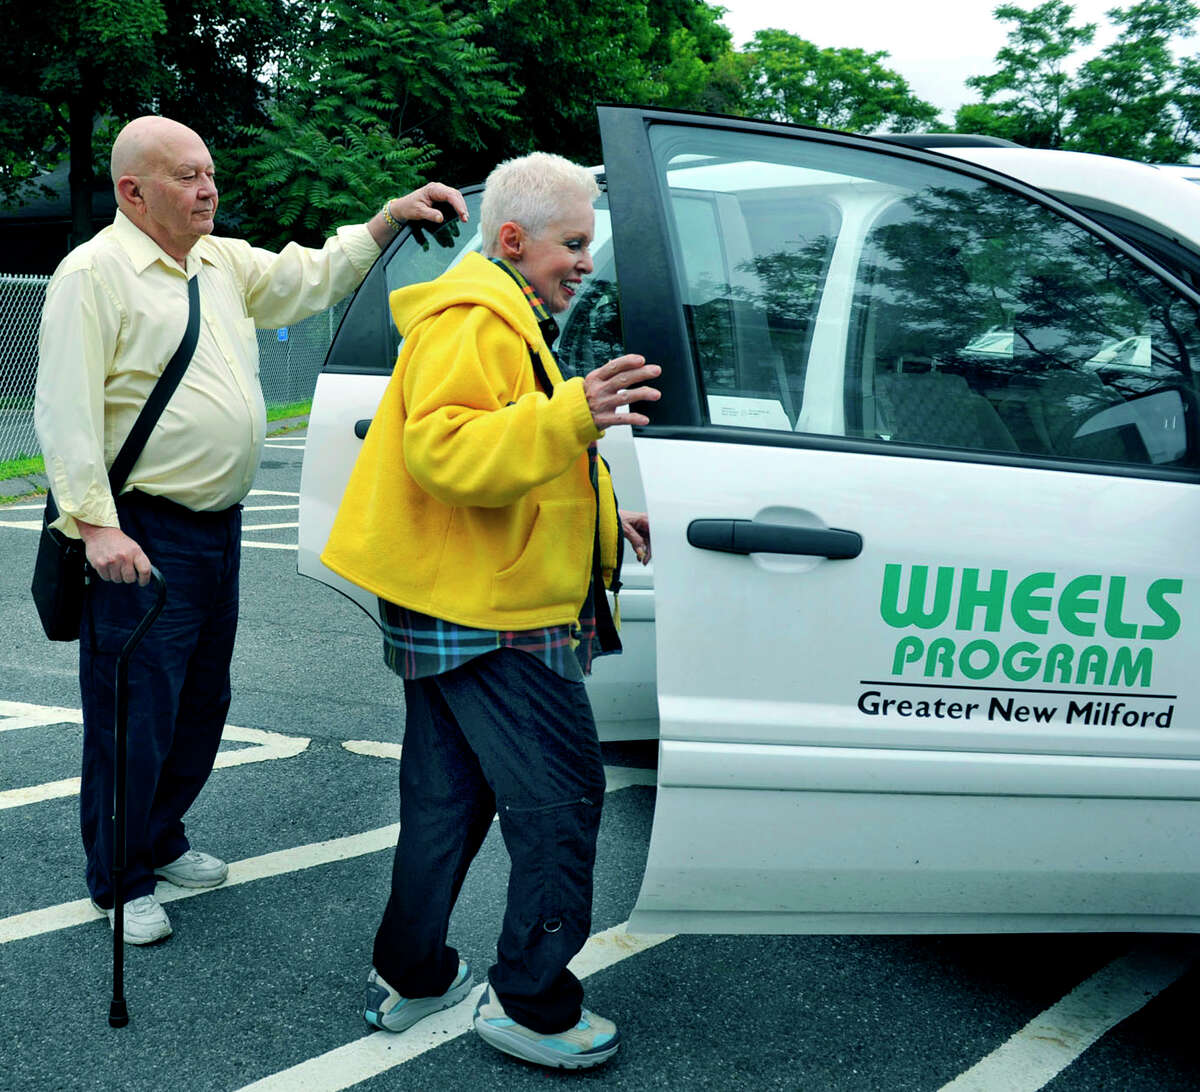 Bill Lowenthal and Maxine Hayes get in a Wheels car Tuesday, June 12, 2012 in New Milford to be driven to doctors' appointments by volunteer Roland Miller